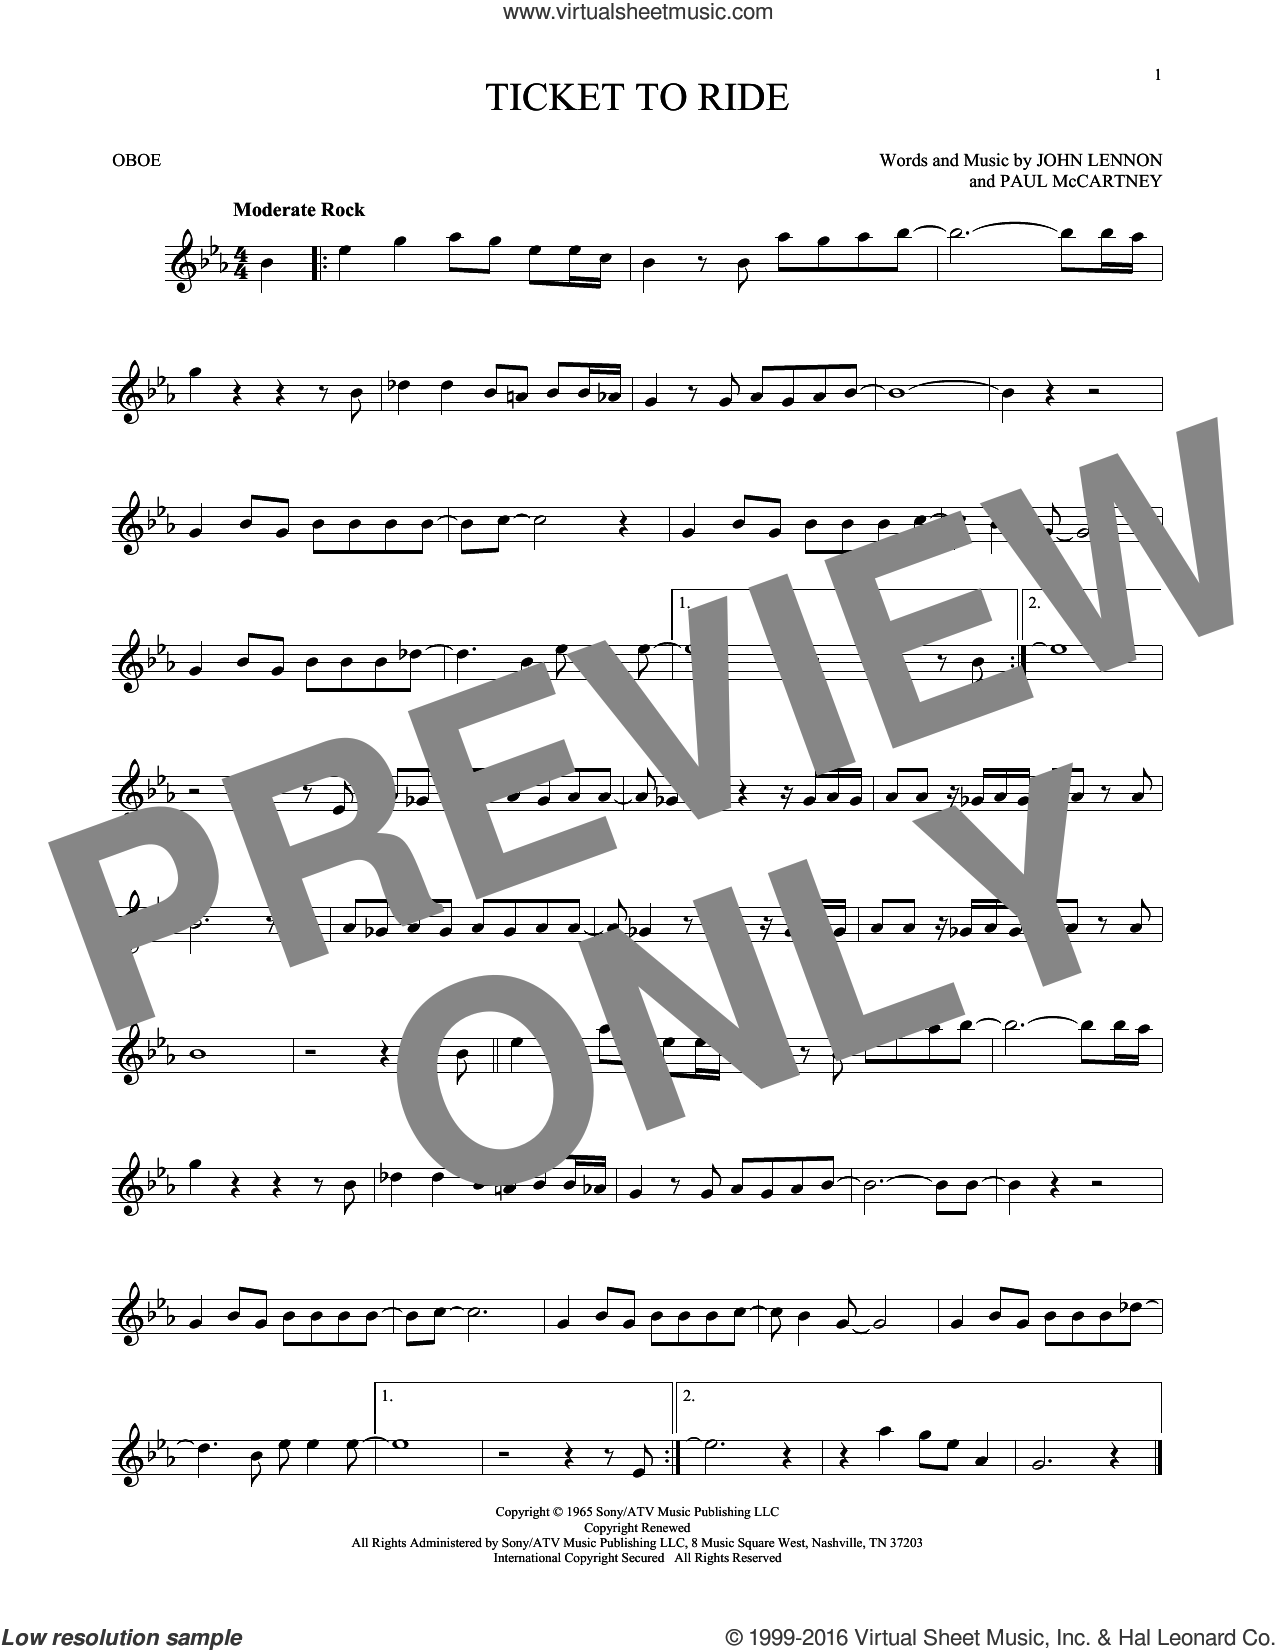 Ticket To Ride sheet music for oboe solo by Paul McCartney, The Beatles and John Lennon. Score Image Preview.